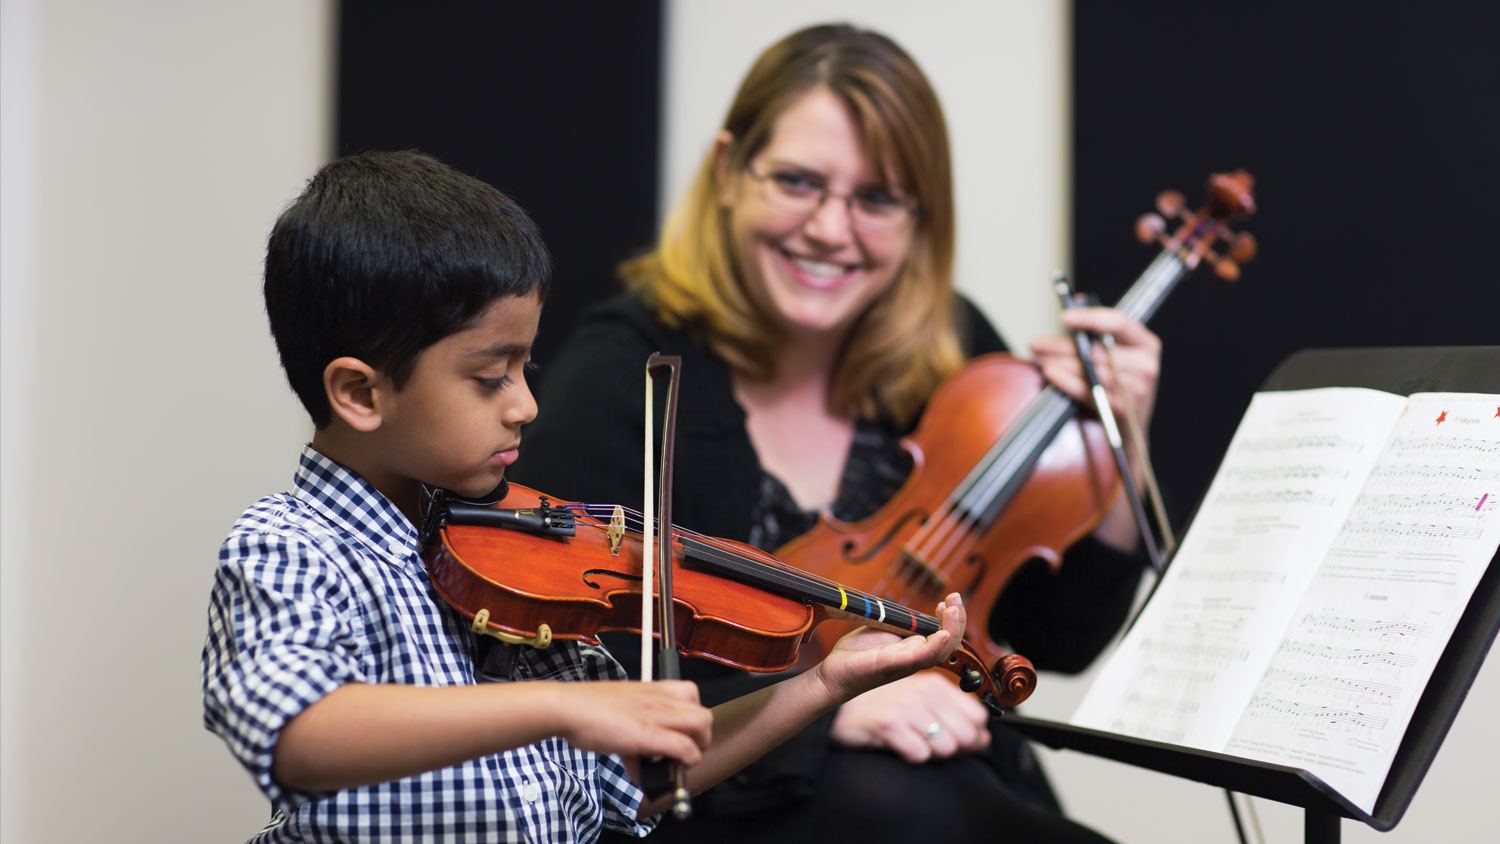 MUSIC LESSONS IN LEWIS CENTER, OHIO    Frequently Asked Questions about Music Lessons & Classes   CALL OR TEXT 740-913-1718 TODAY TO SCHEDULE YOUR FIRST LESSON   REQUEST INFO